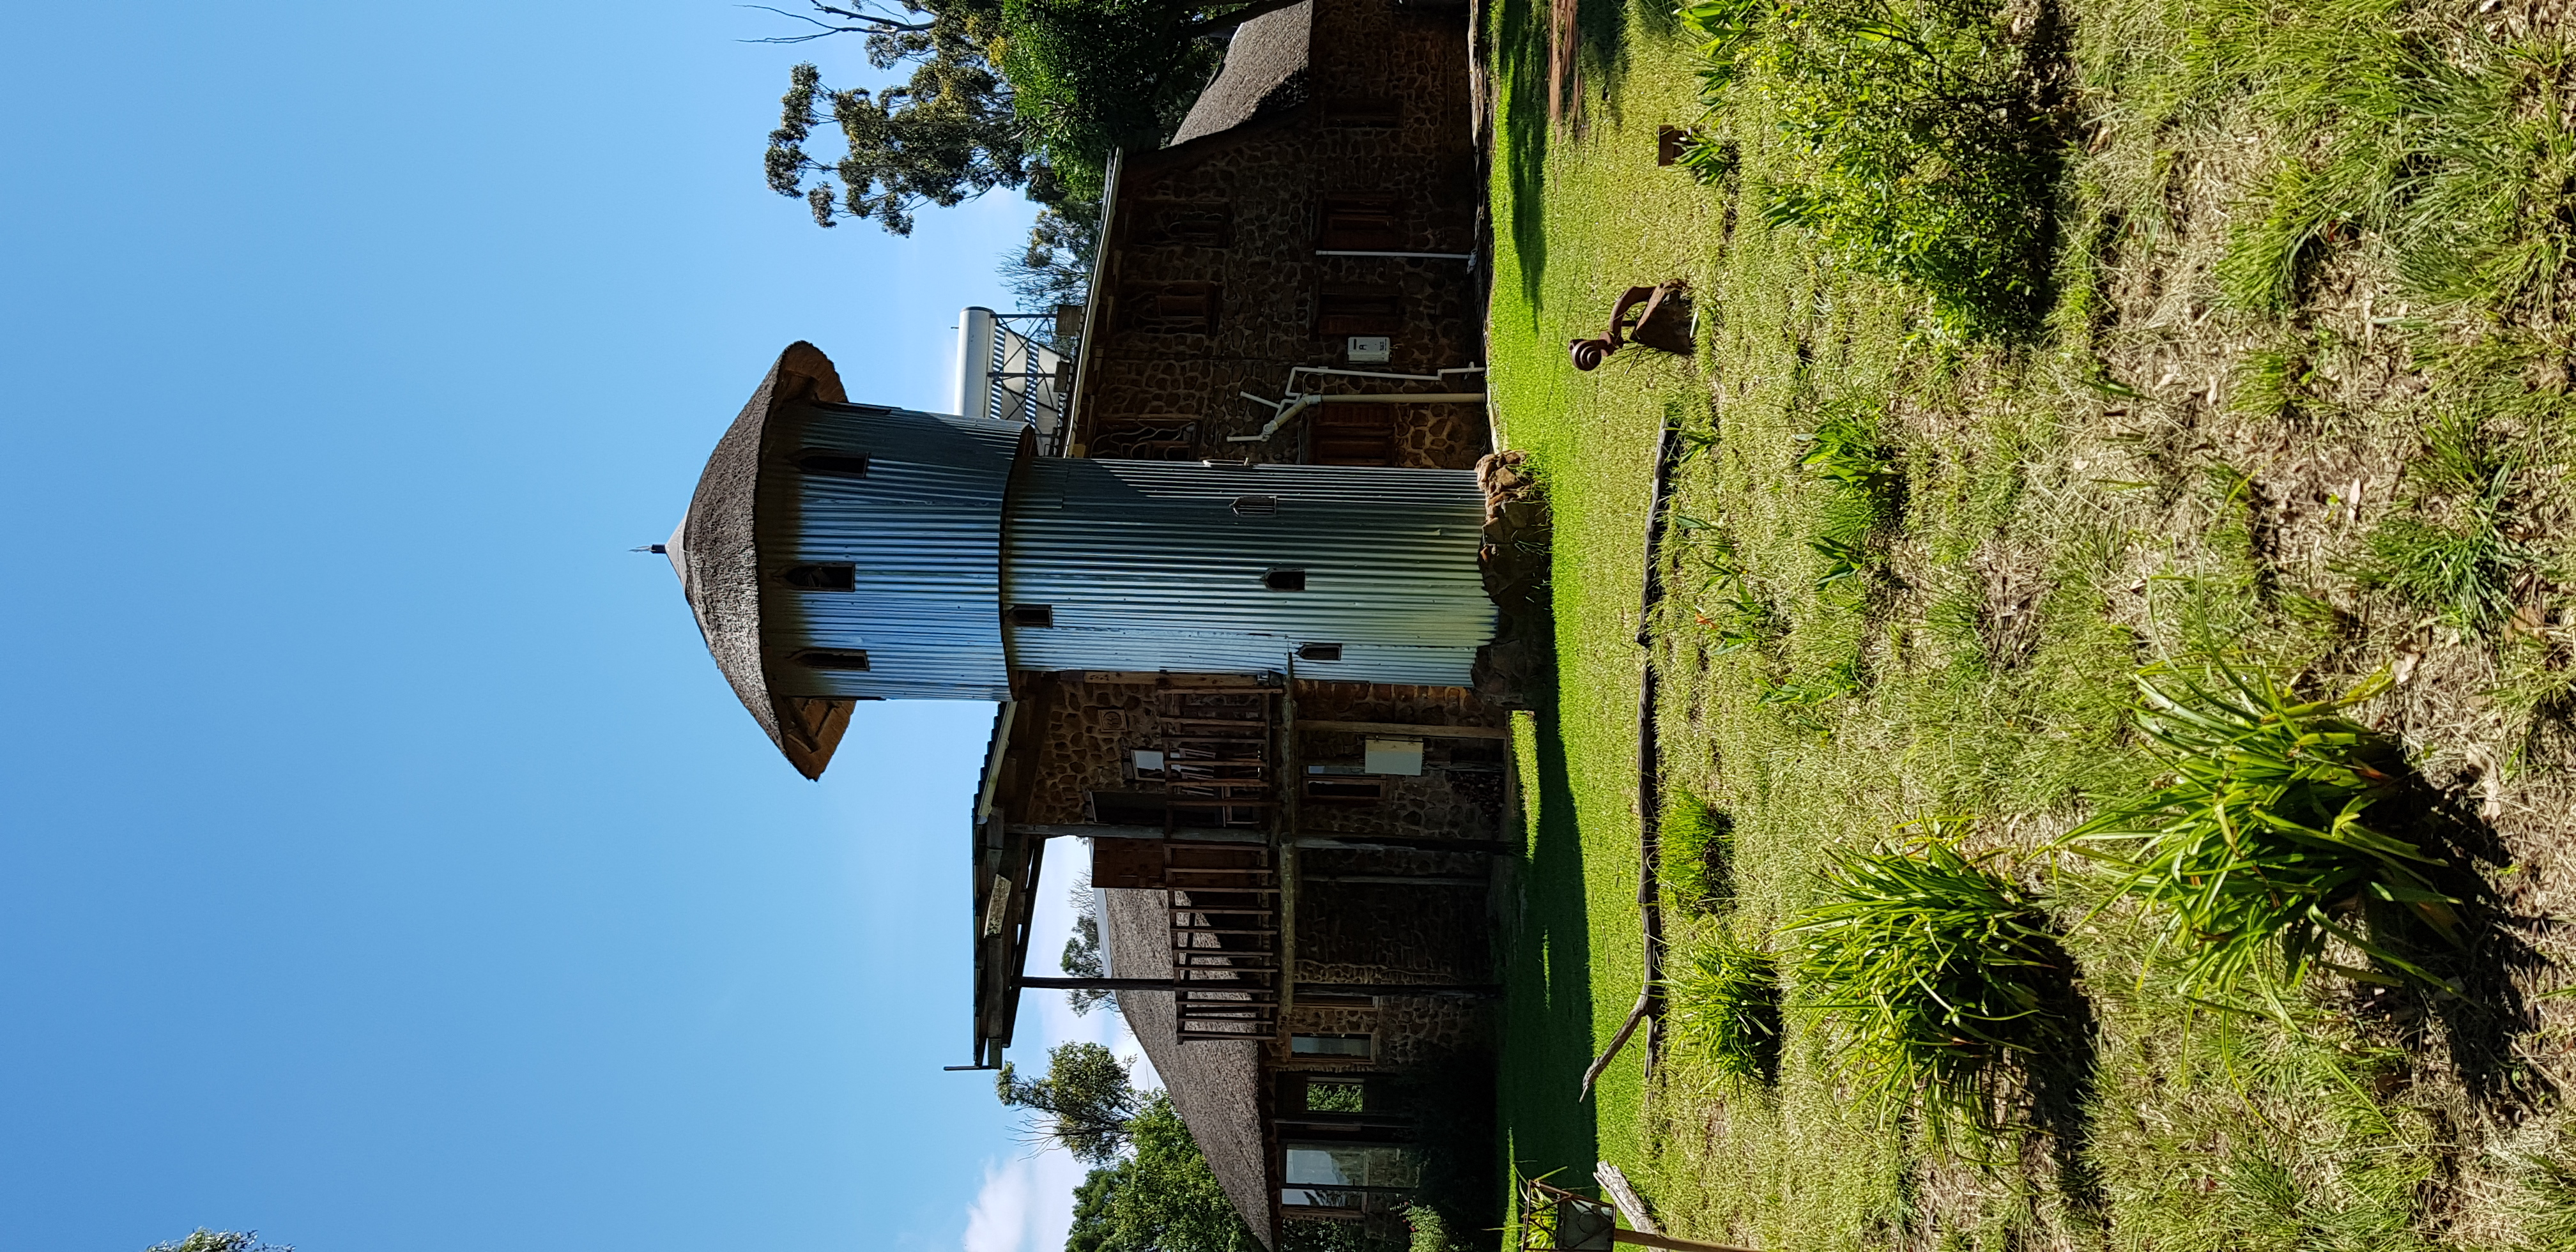 Unusual Tower Structure, on the outskirt  of Antbear's conference or chapel facility.